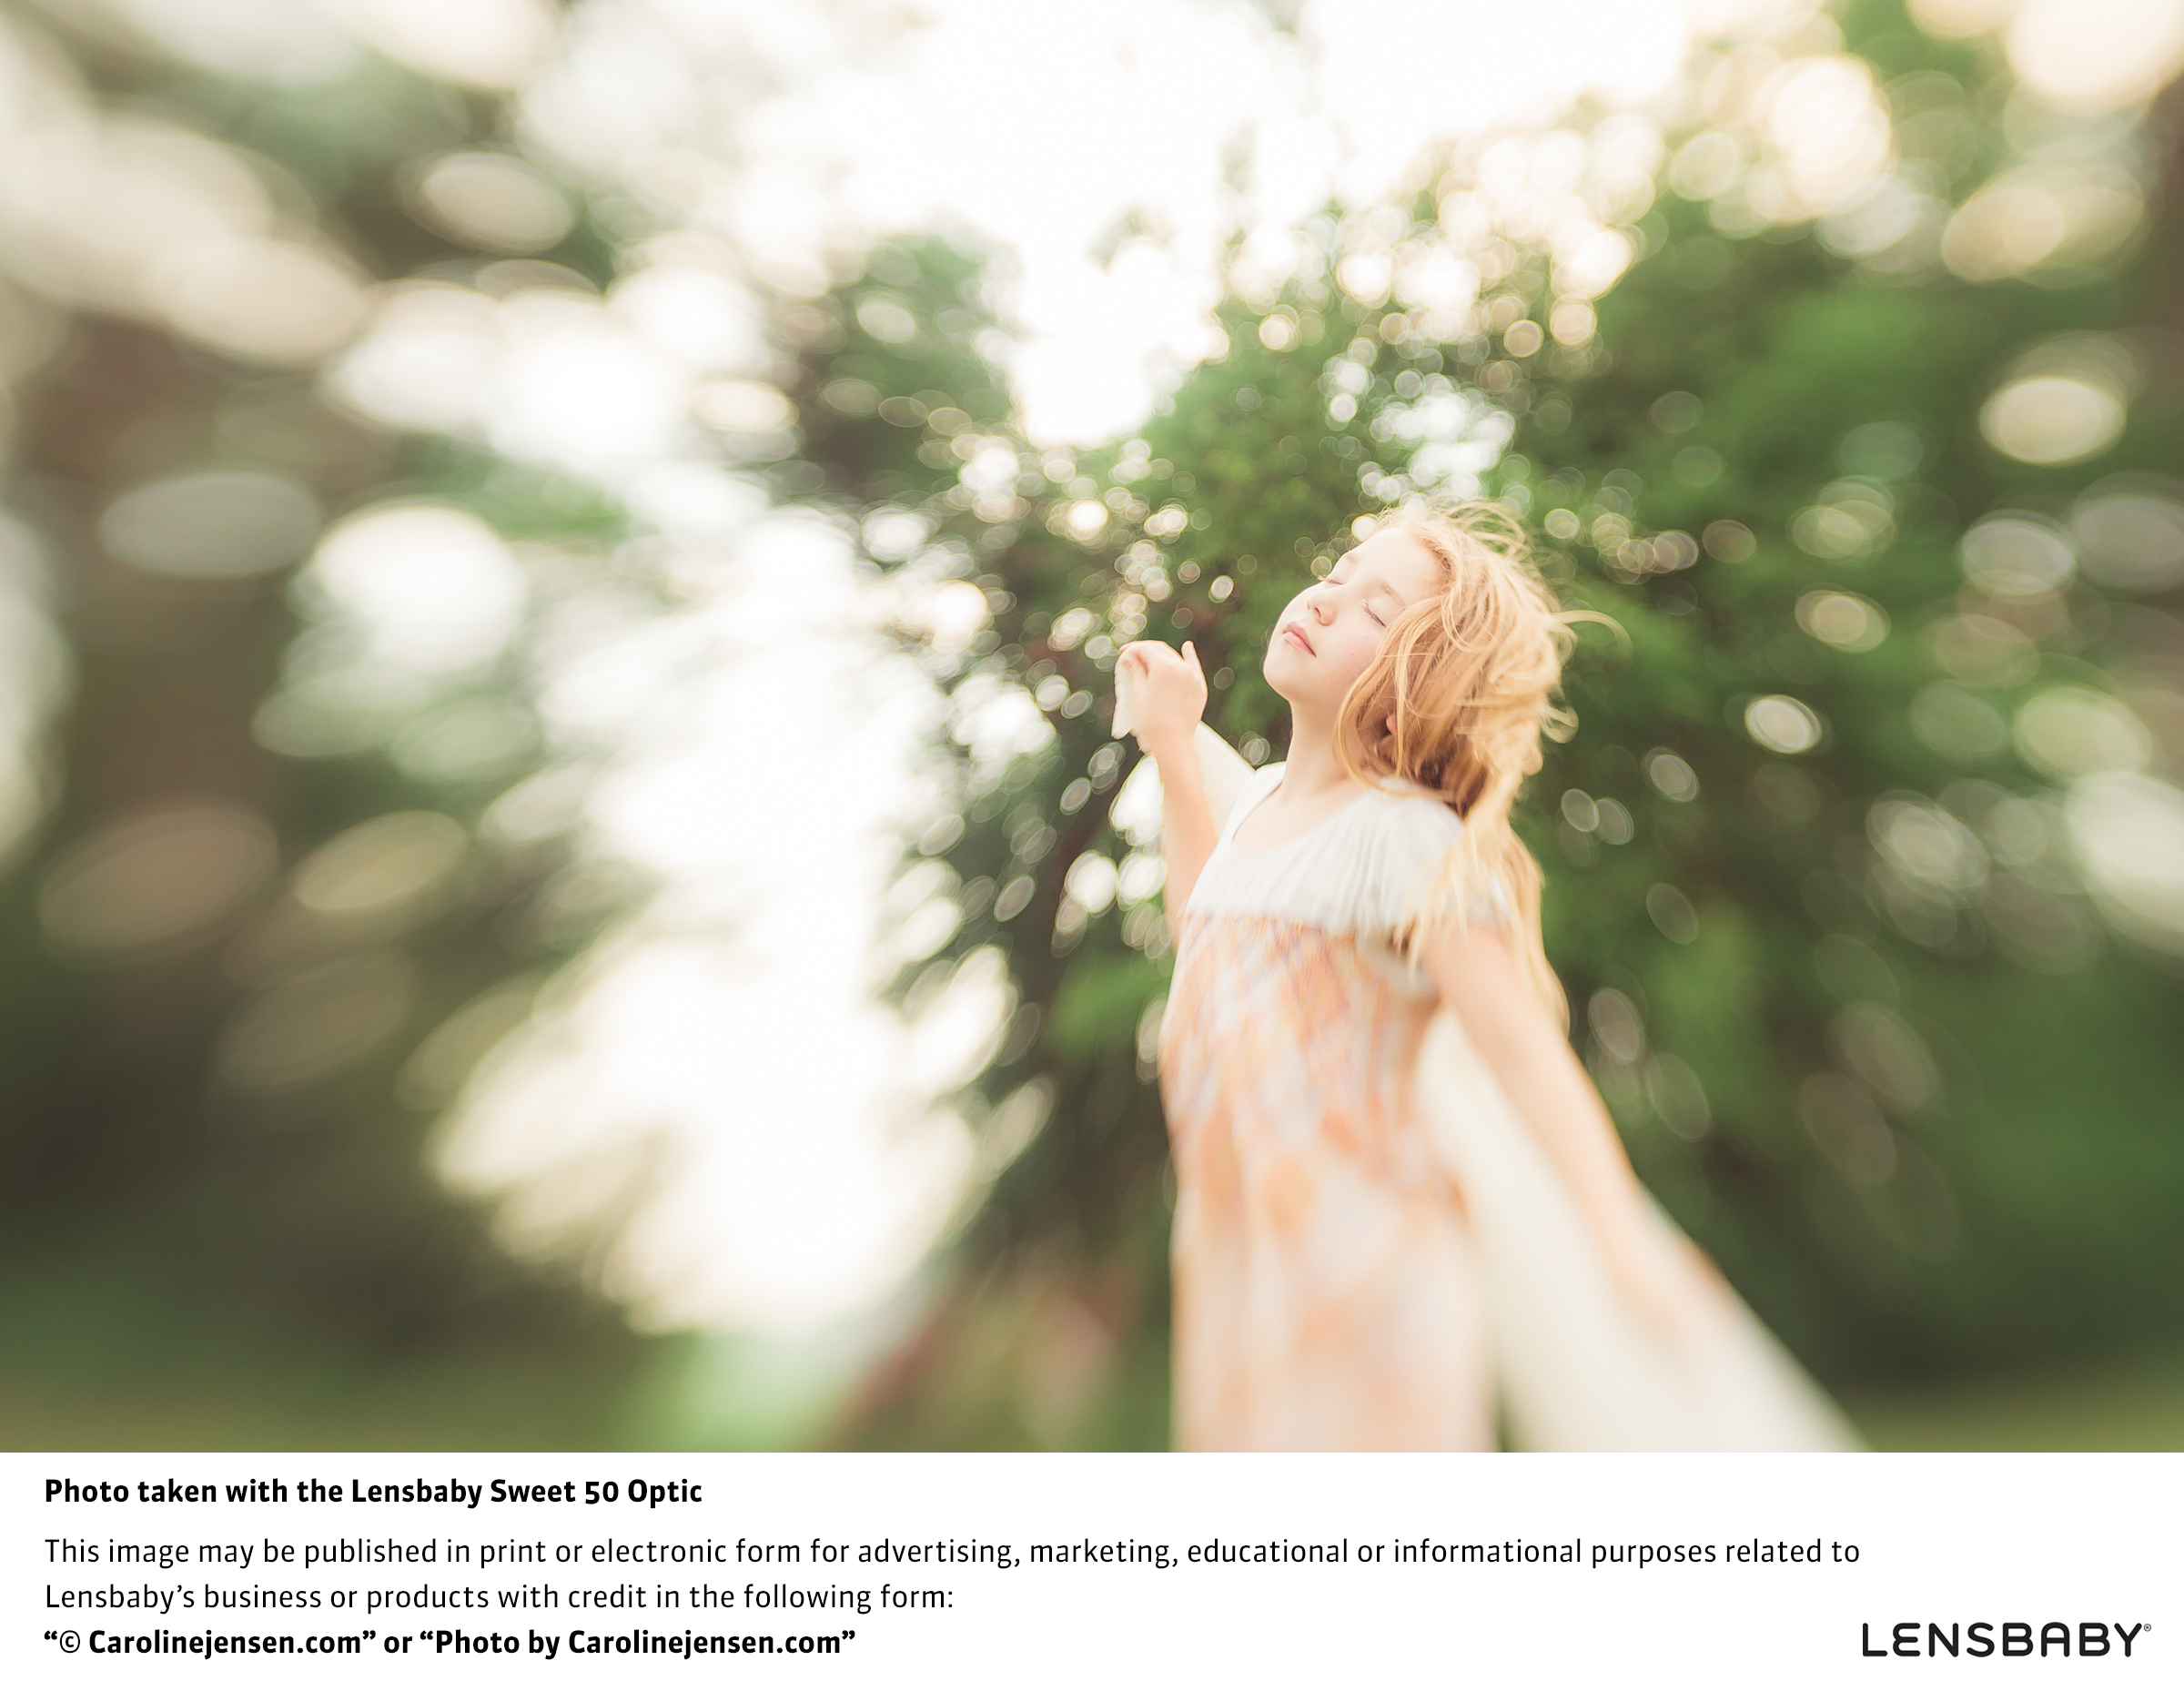 """Lensbaby's signature """"sweet spot"""" depth-of-field look. Shot with Sweet 50 Optic. Similar results can be had with the LM-10, the new mobile Sweet Spot lens. (Photo: Carolinejensen.com)"""